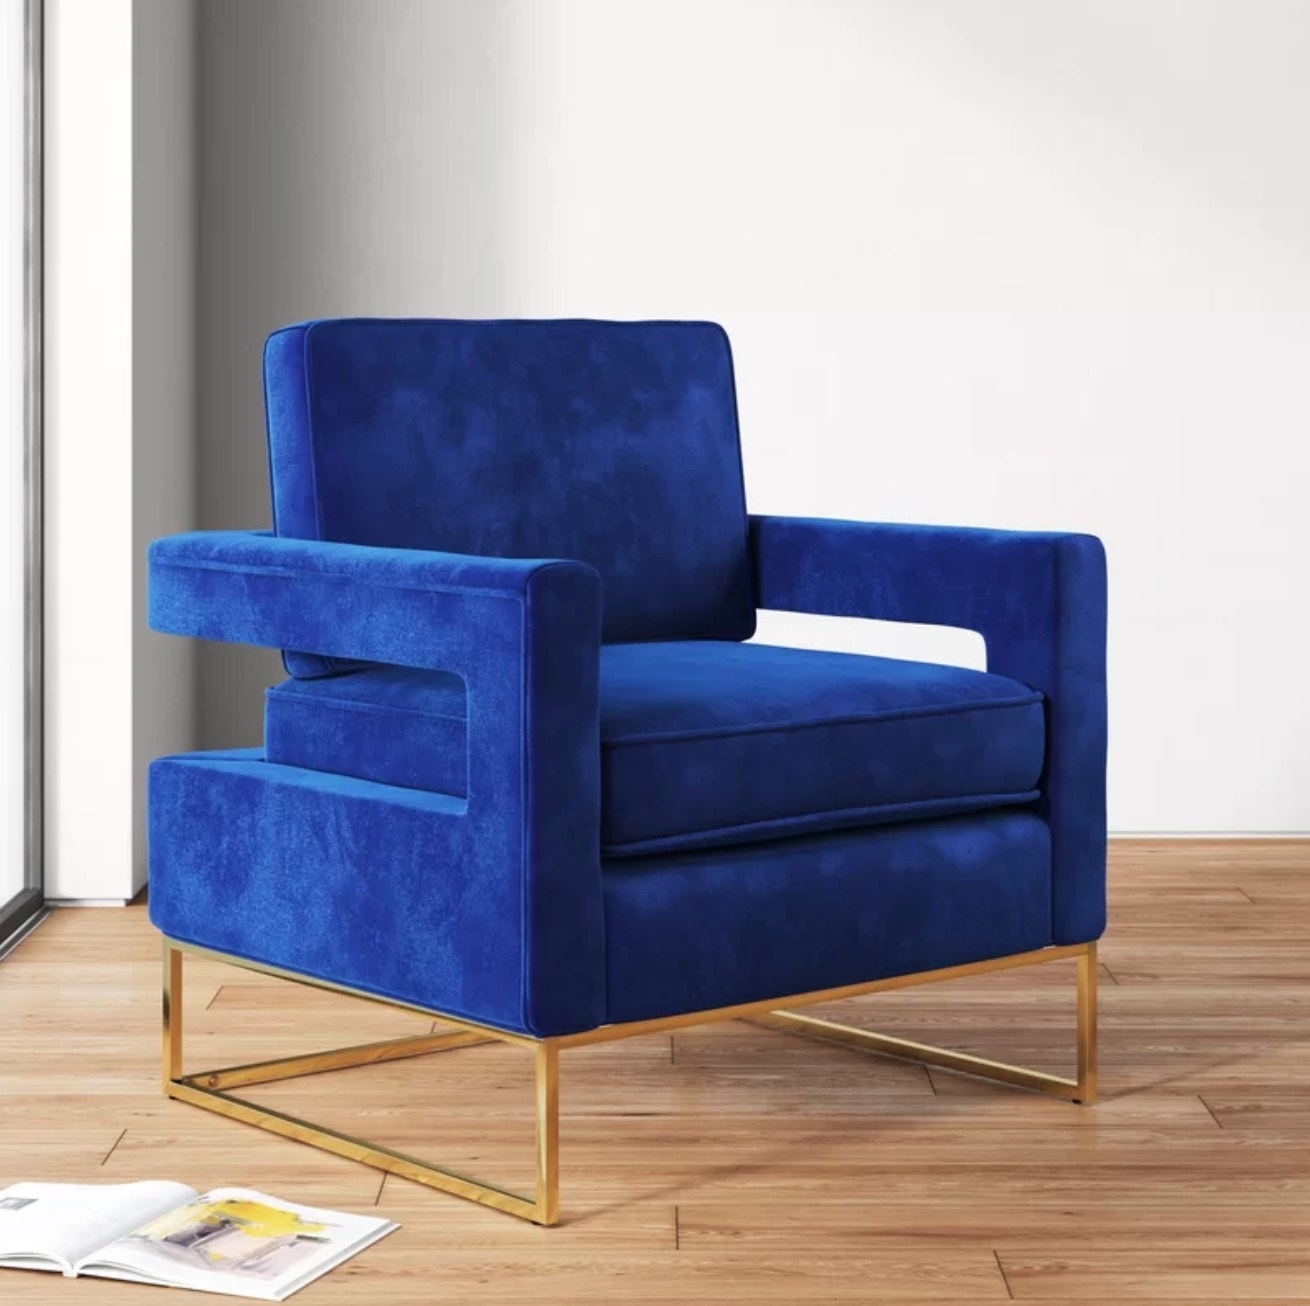 The armchair in blue velvet with gold legs